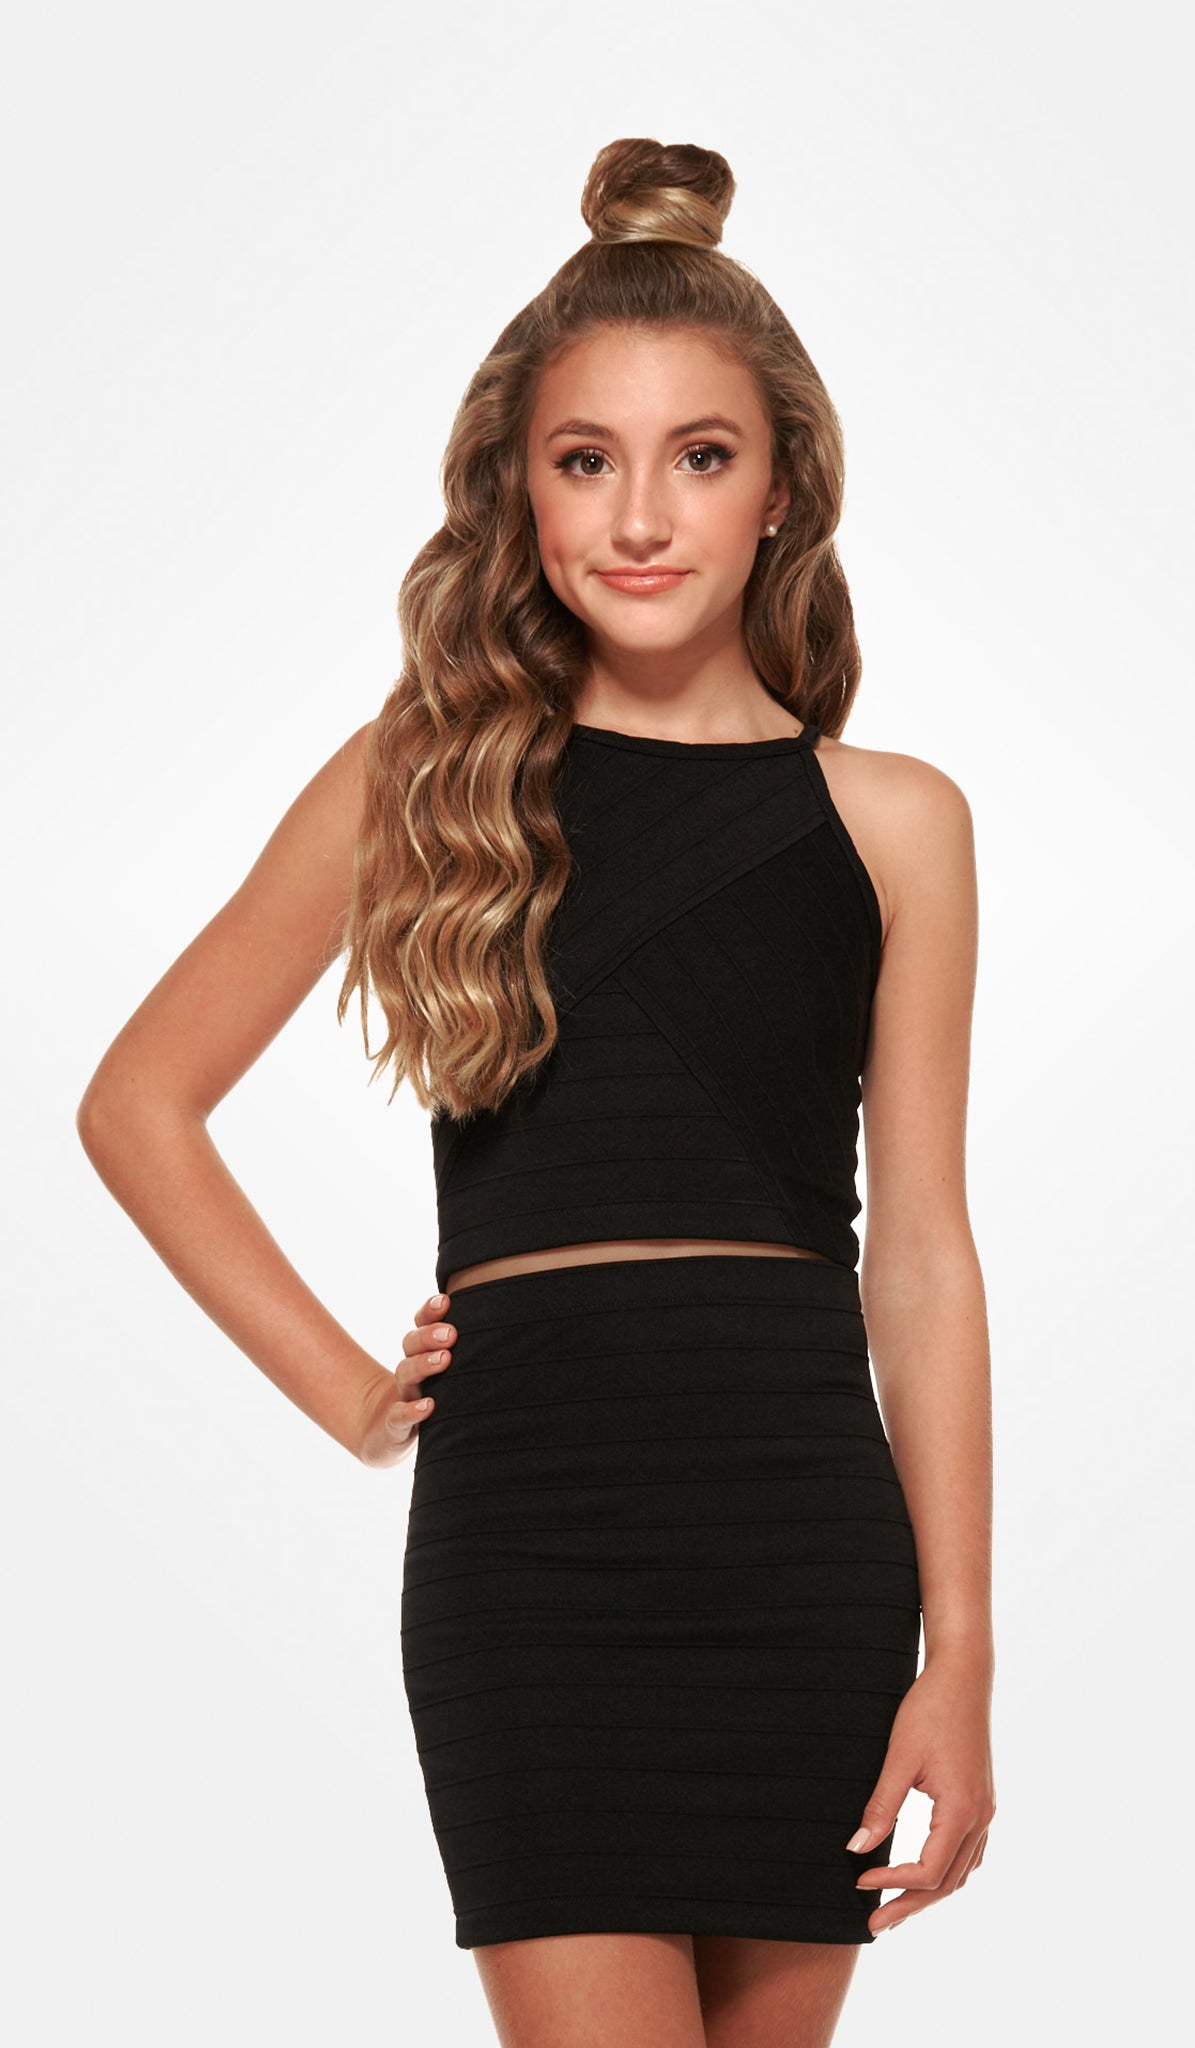 The Sally Miller Jill Dress - Black varigated stripe textured stretch knit body con skirt set